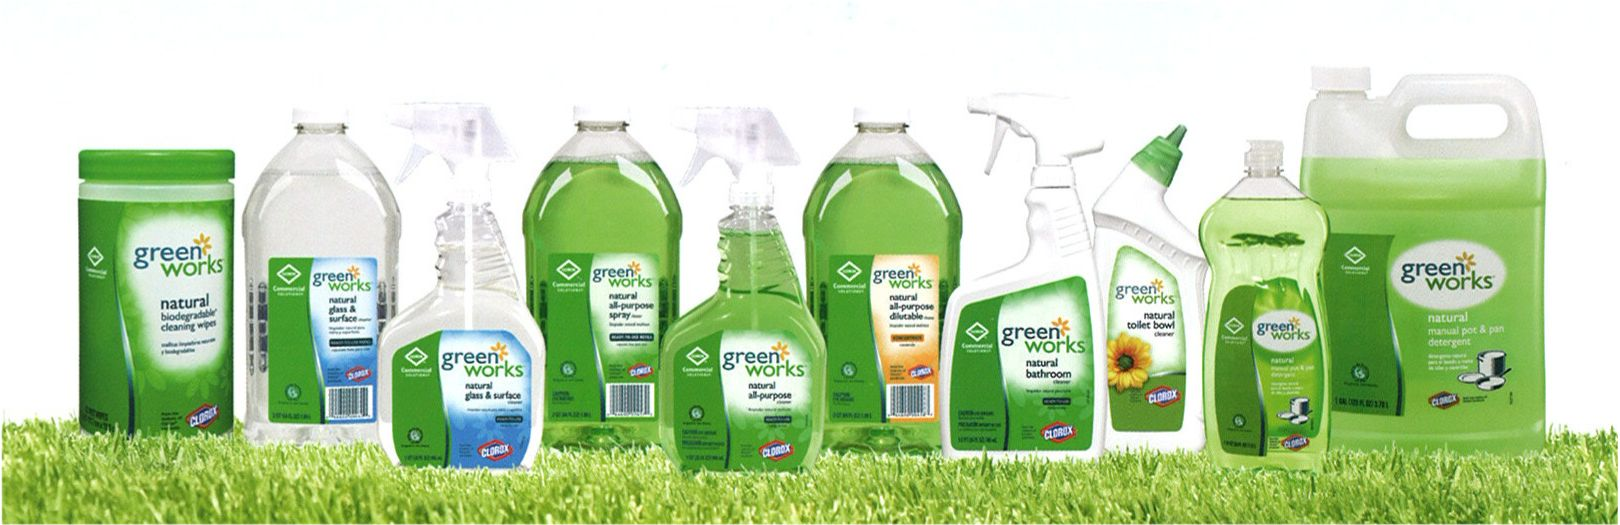 Cleaning Products Services Eco Friendly